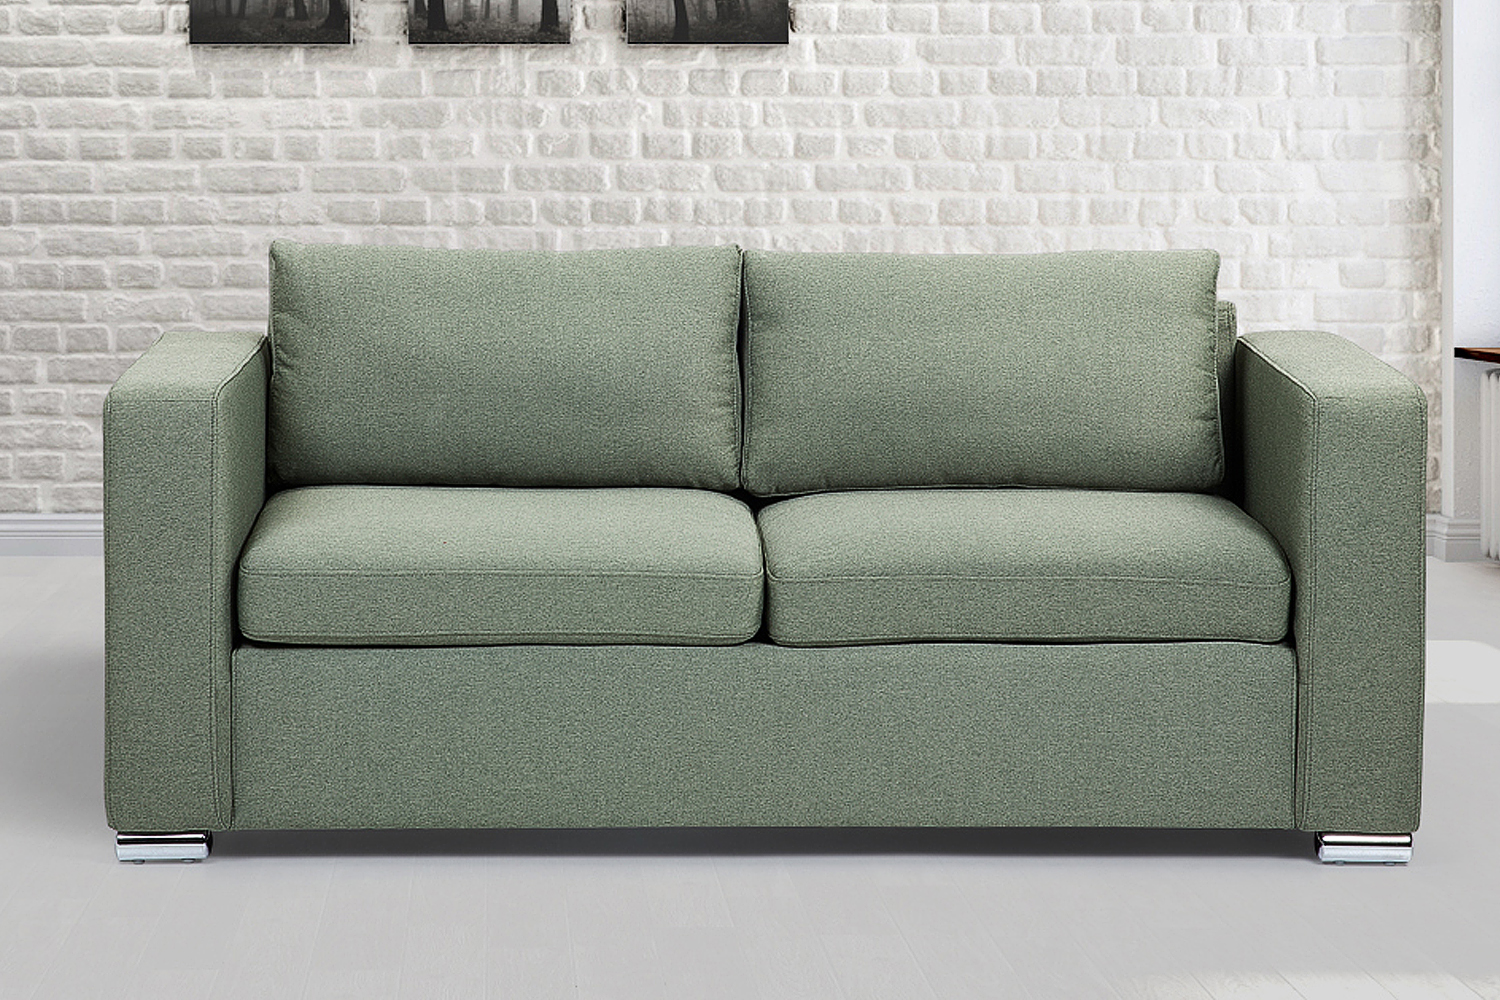 Fabric Sofa Two Seater Living Room Sofa 3 Seater Couch